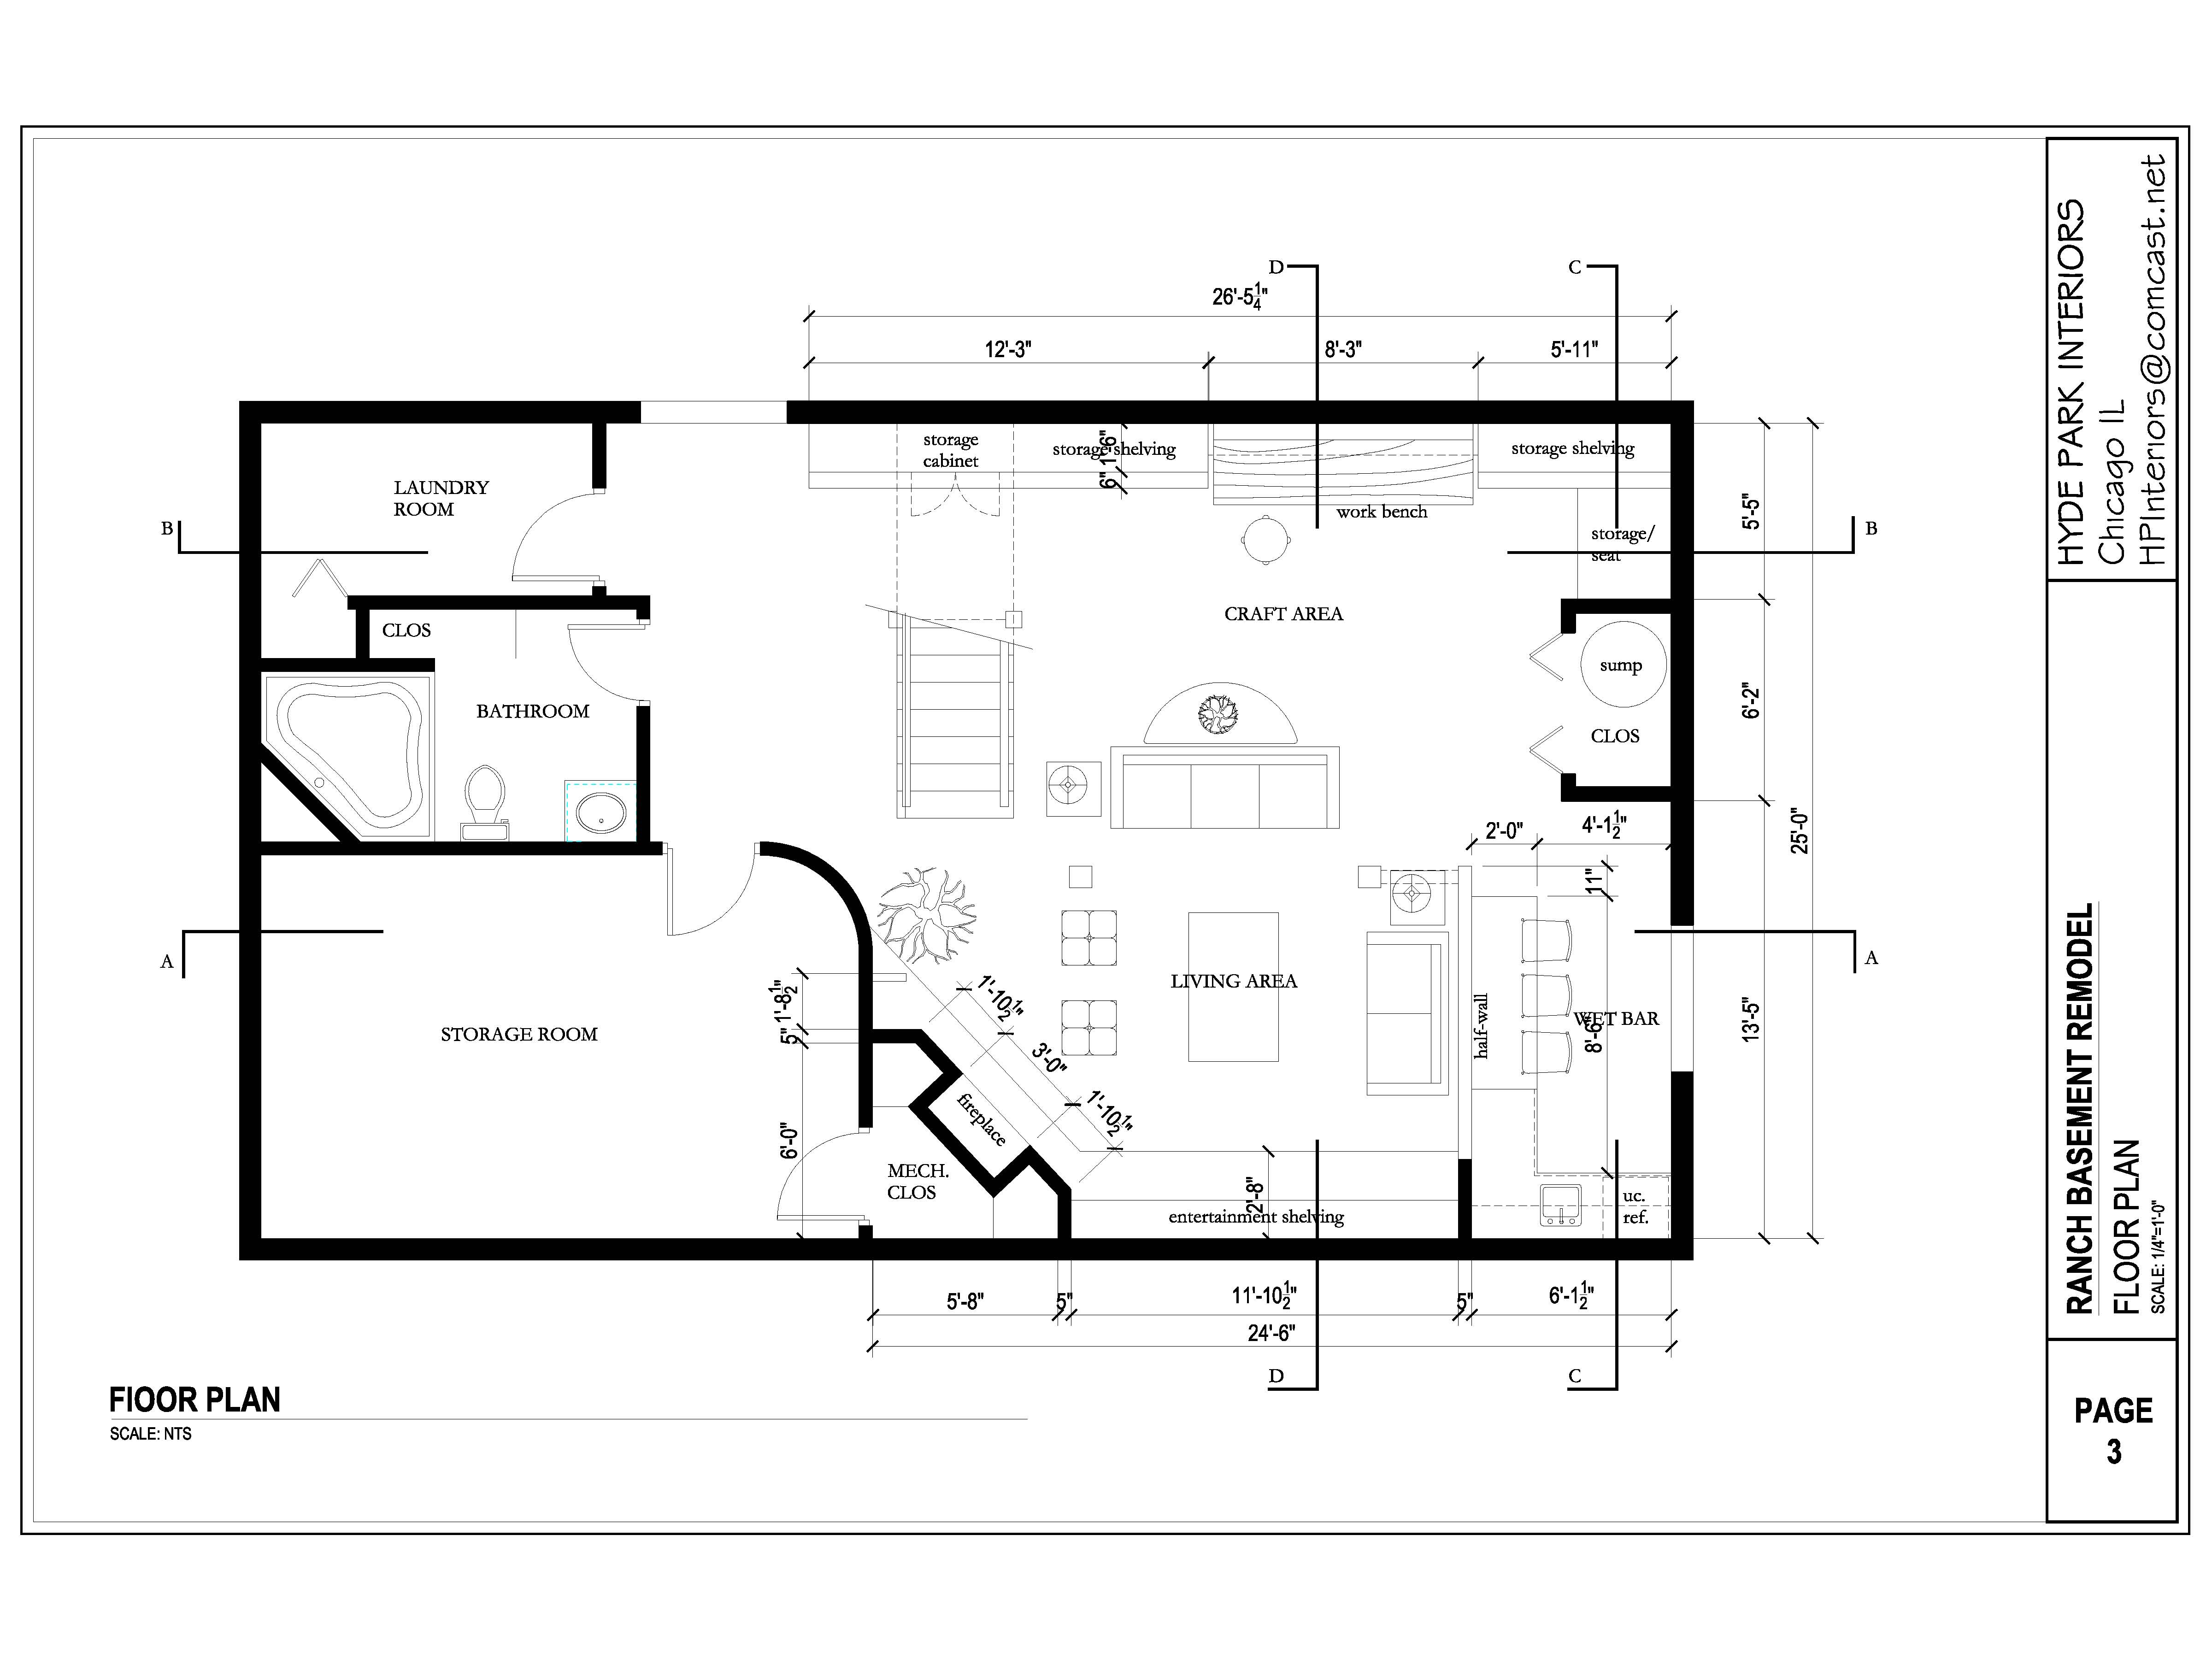 Viewdesignerproject projectbasement for Basement design layouts